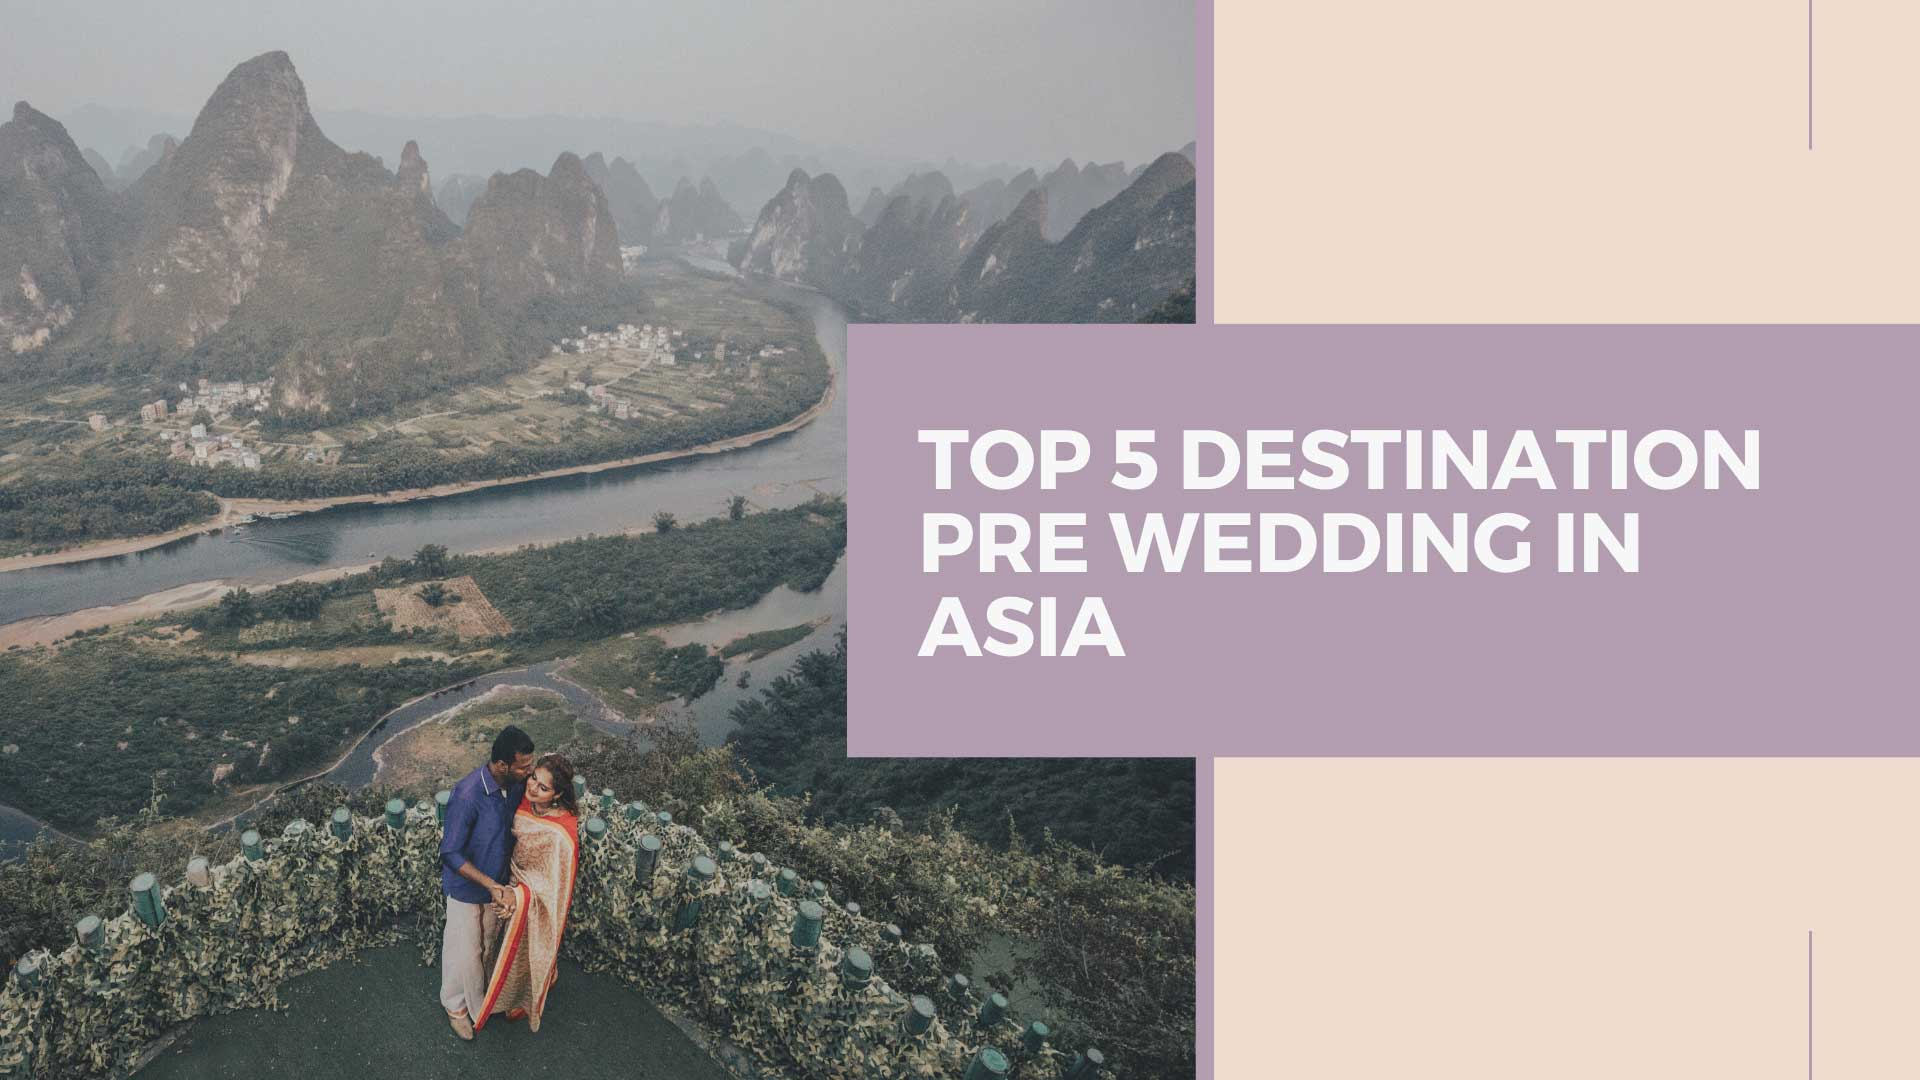 Top 5 Destination Pre Wedding in Asia